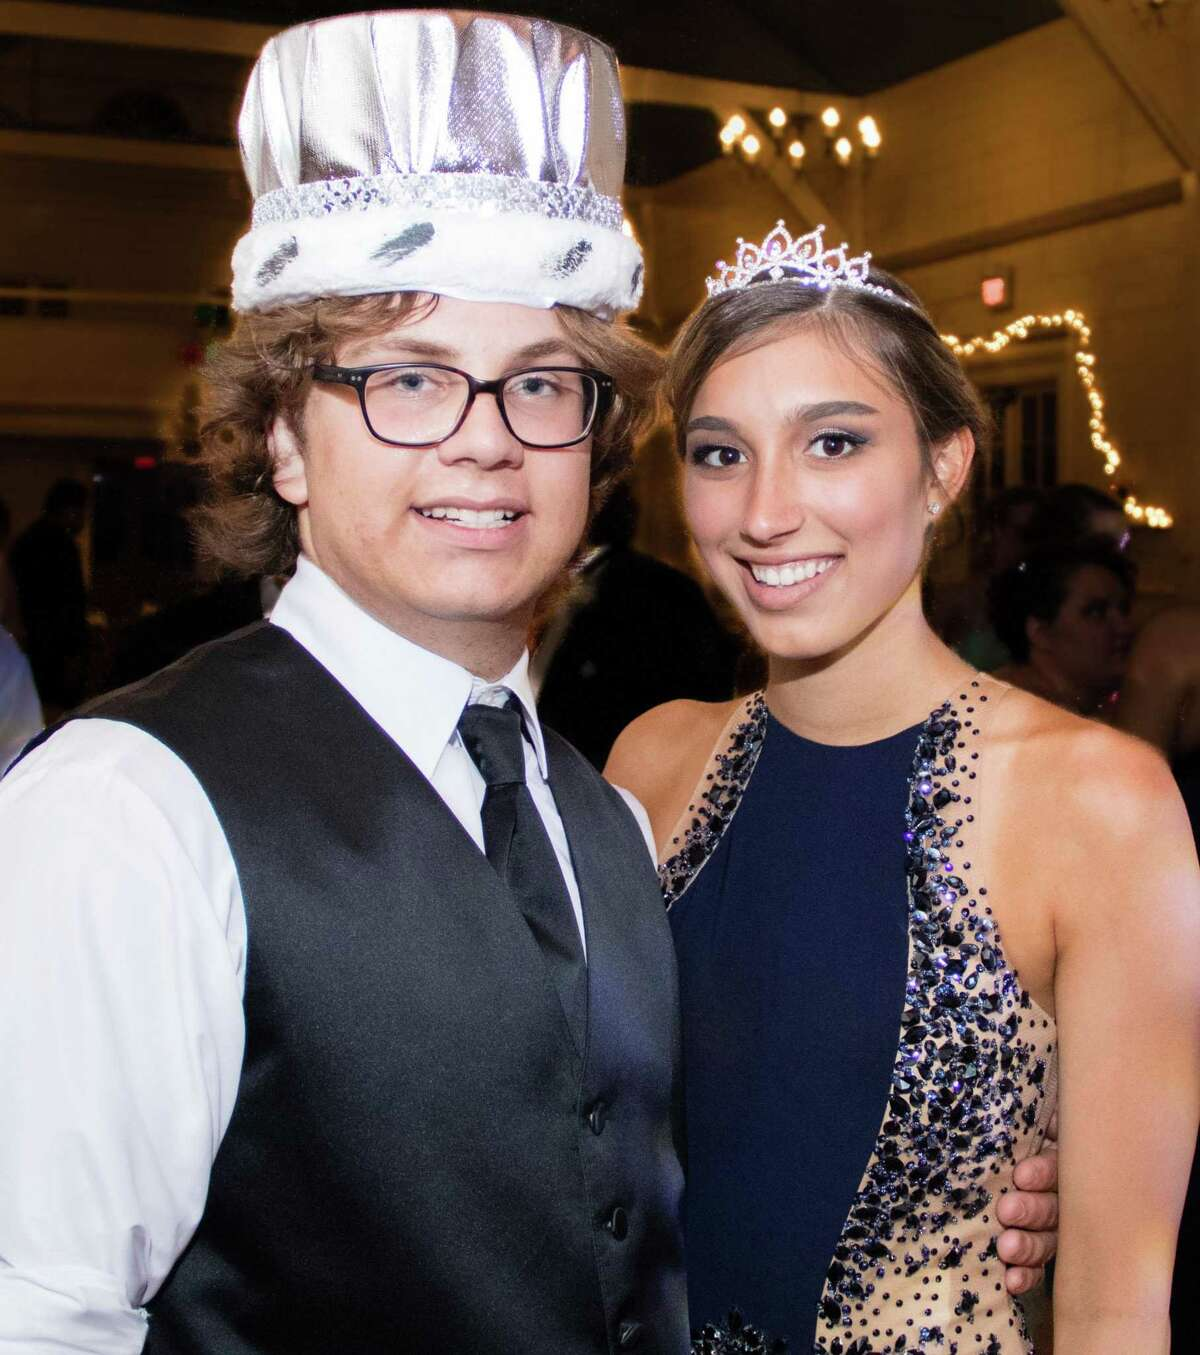 Mark Santariello and Cassidy Seaver were crowned king and queen of the Glenholme School prom held June 3 at the Washington Club.